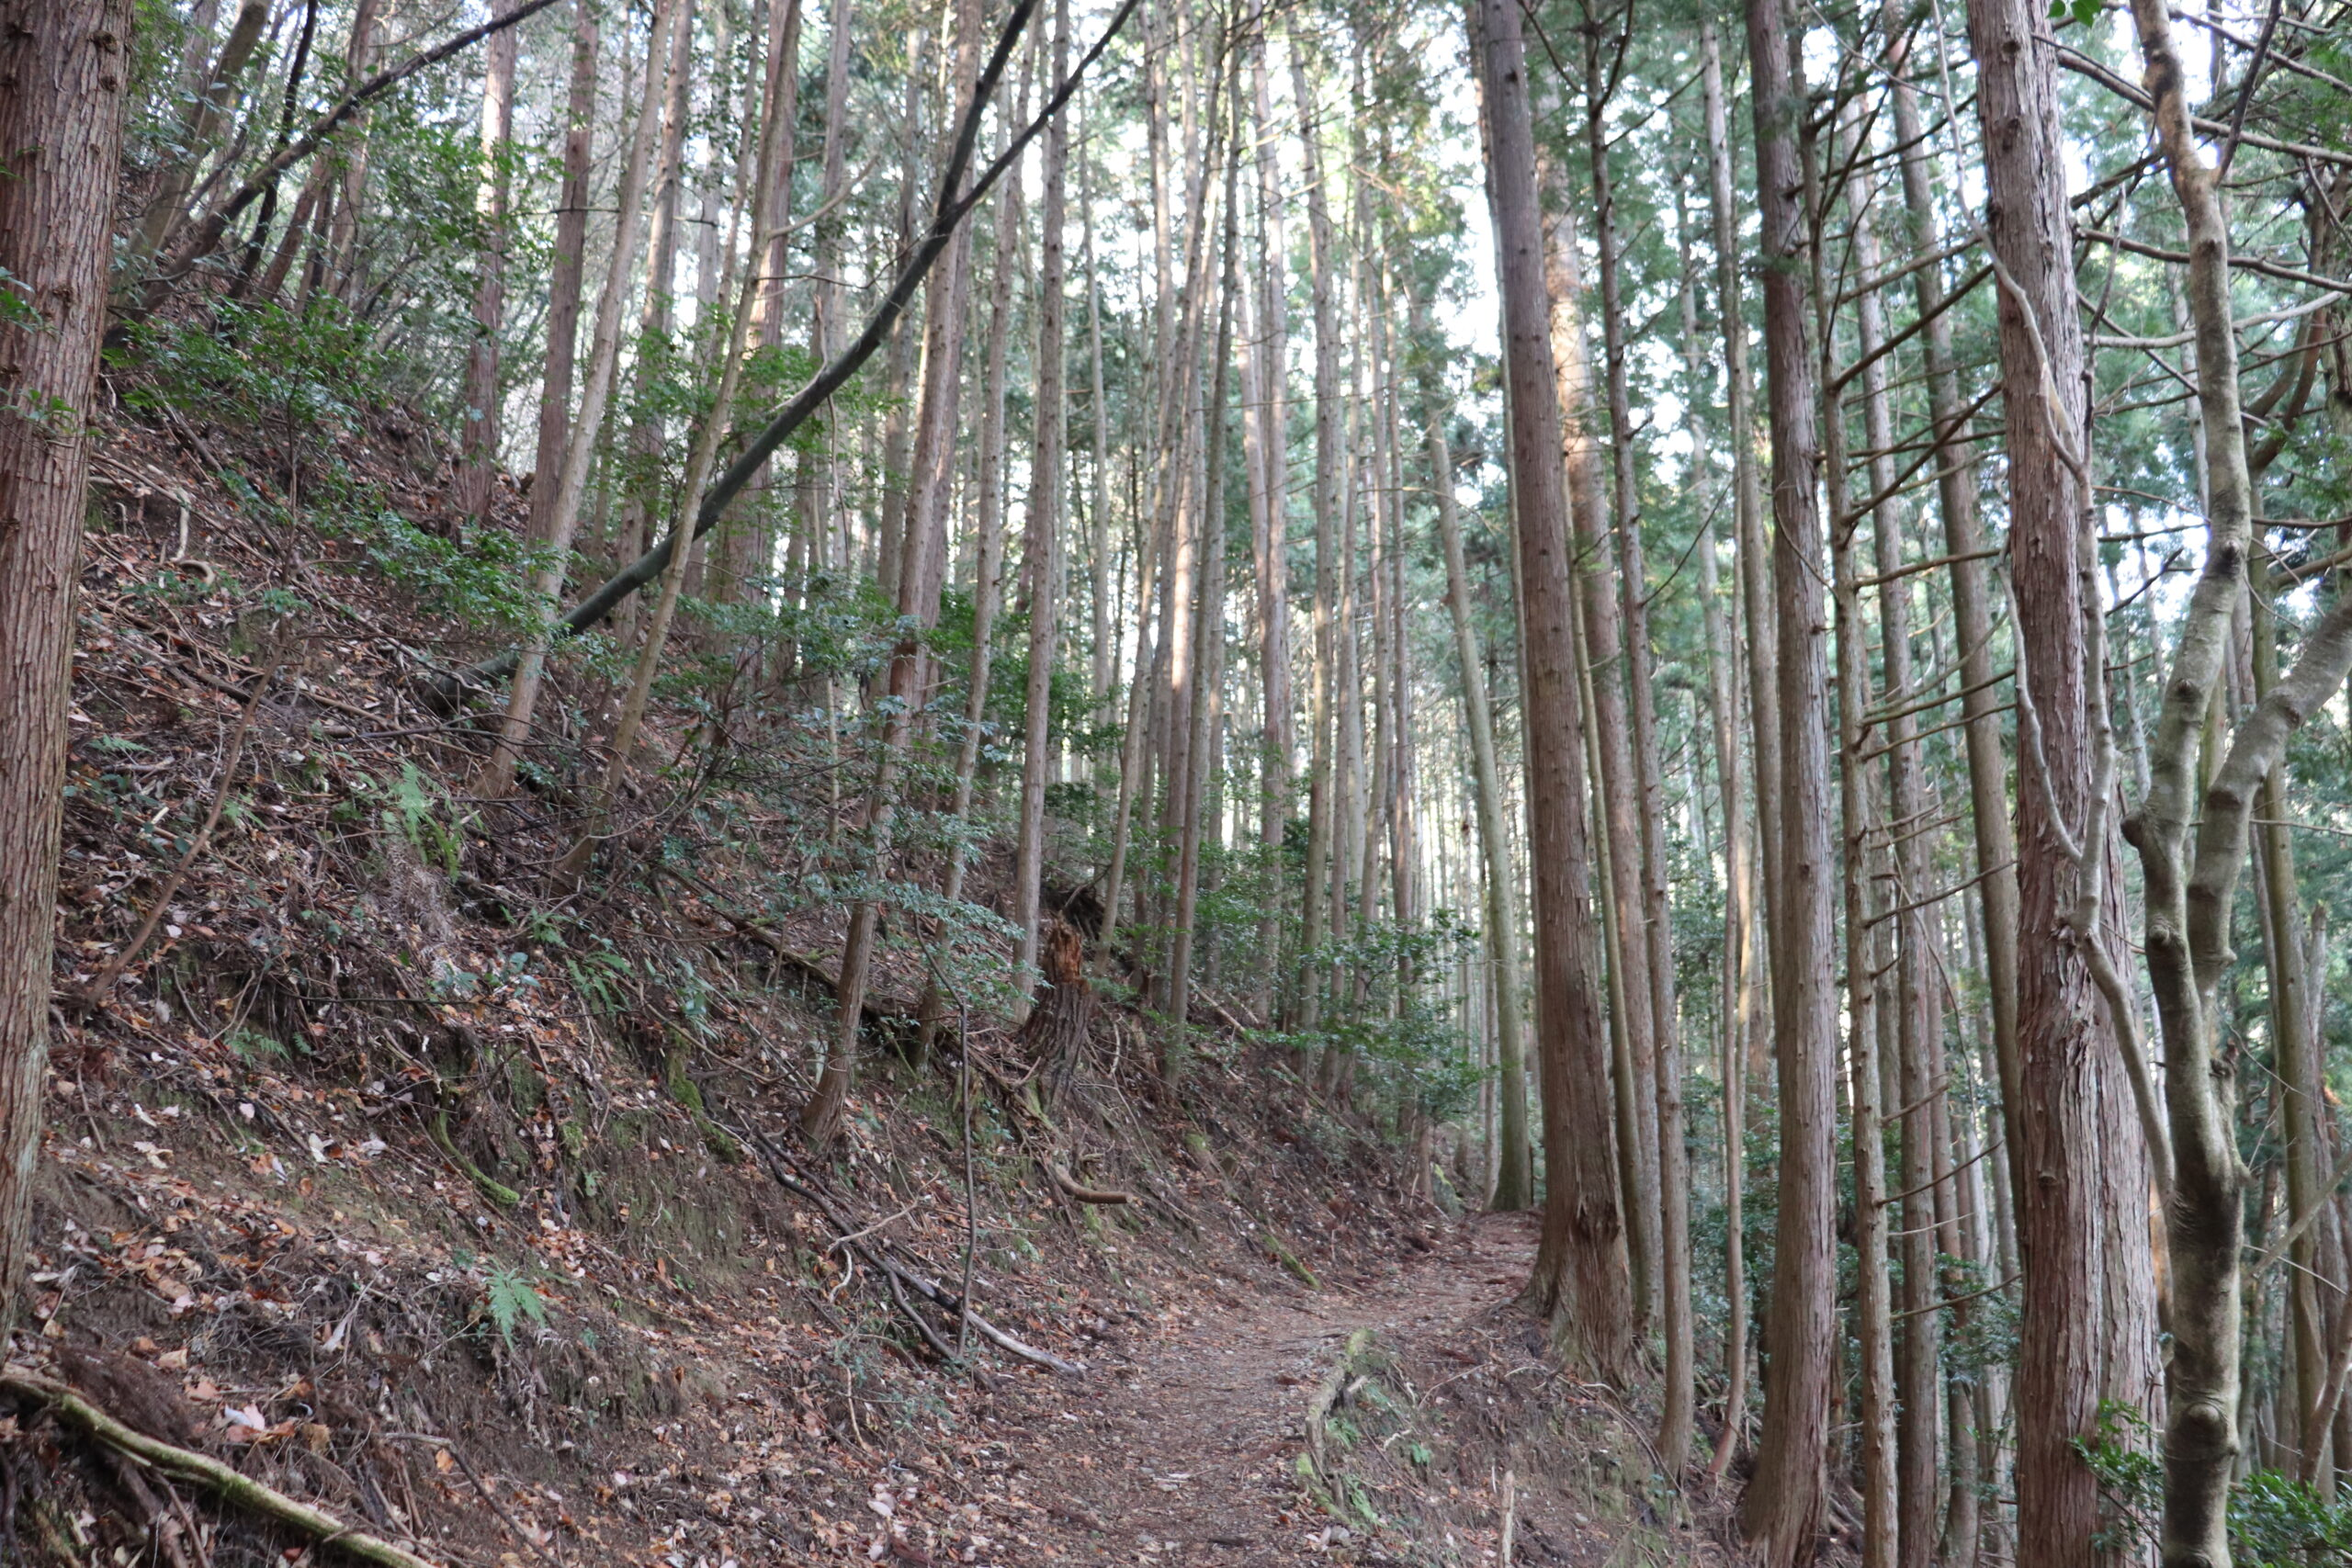 Nusuttodani Ravine of the Kitayama West Course, Kyoto Circuit Trail